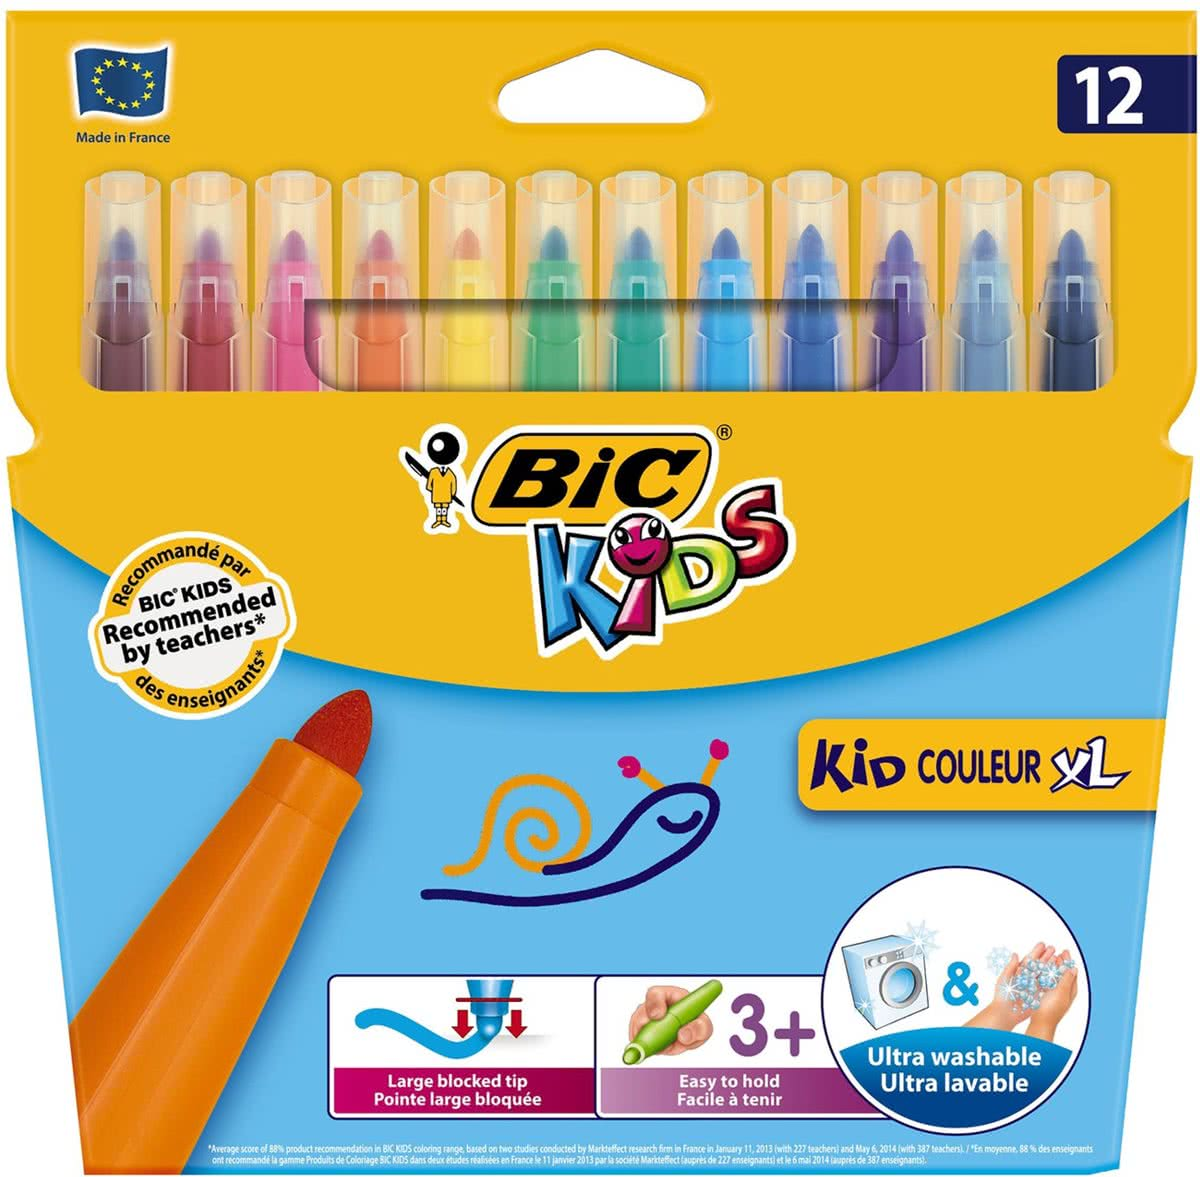 Kids Kid Couleur XL, 12st.